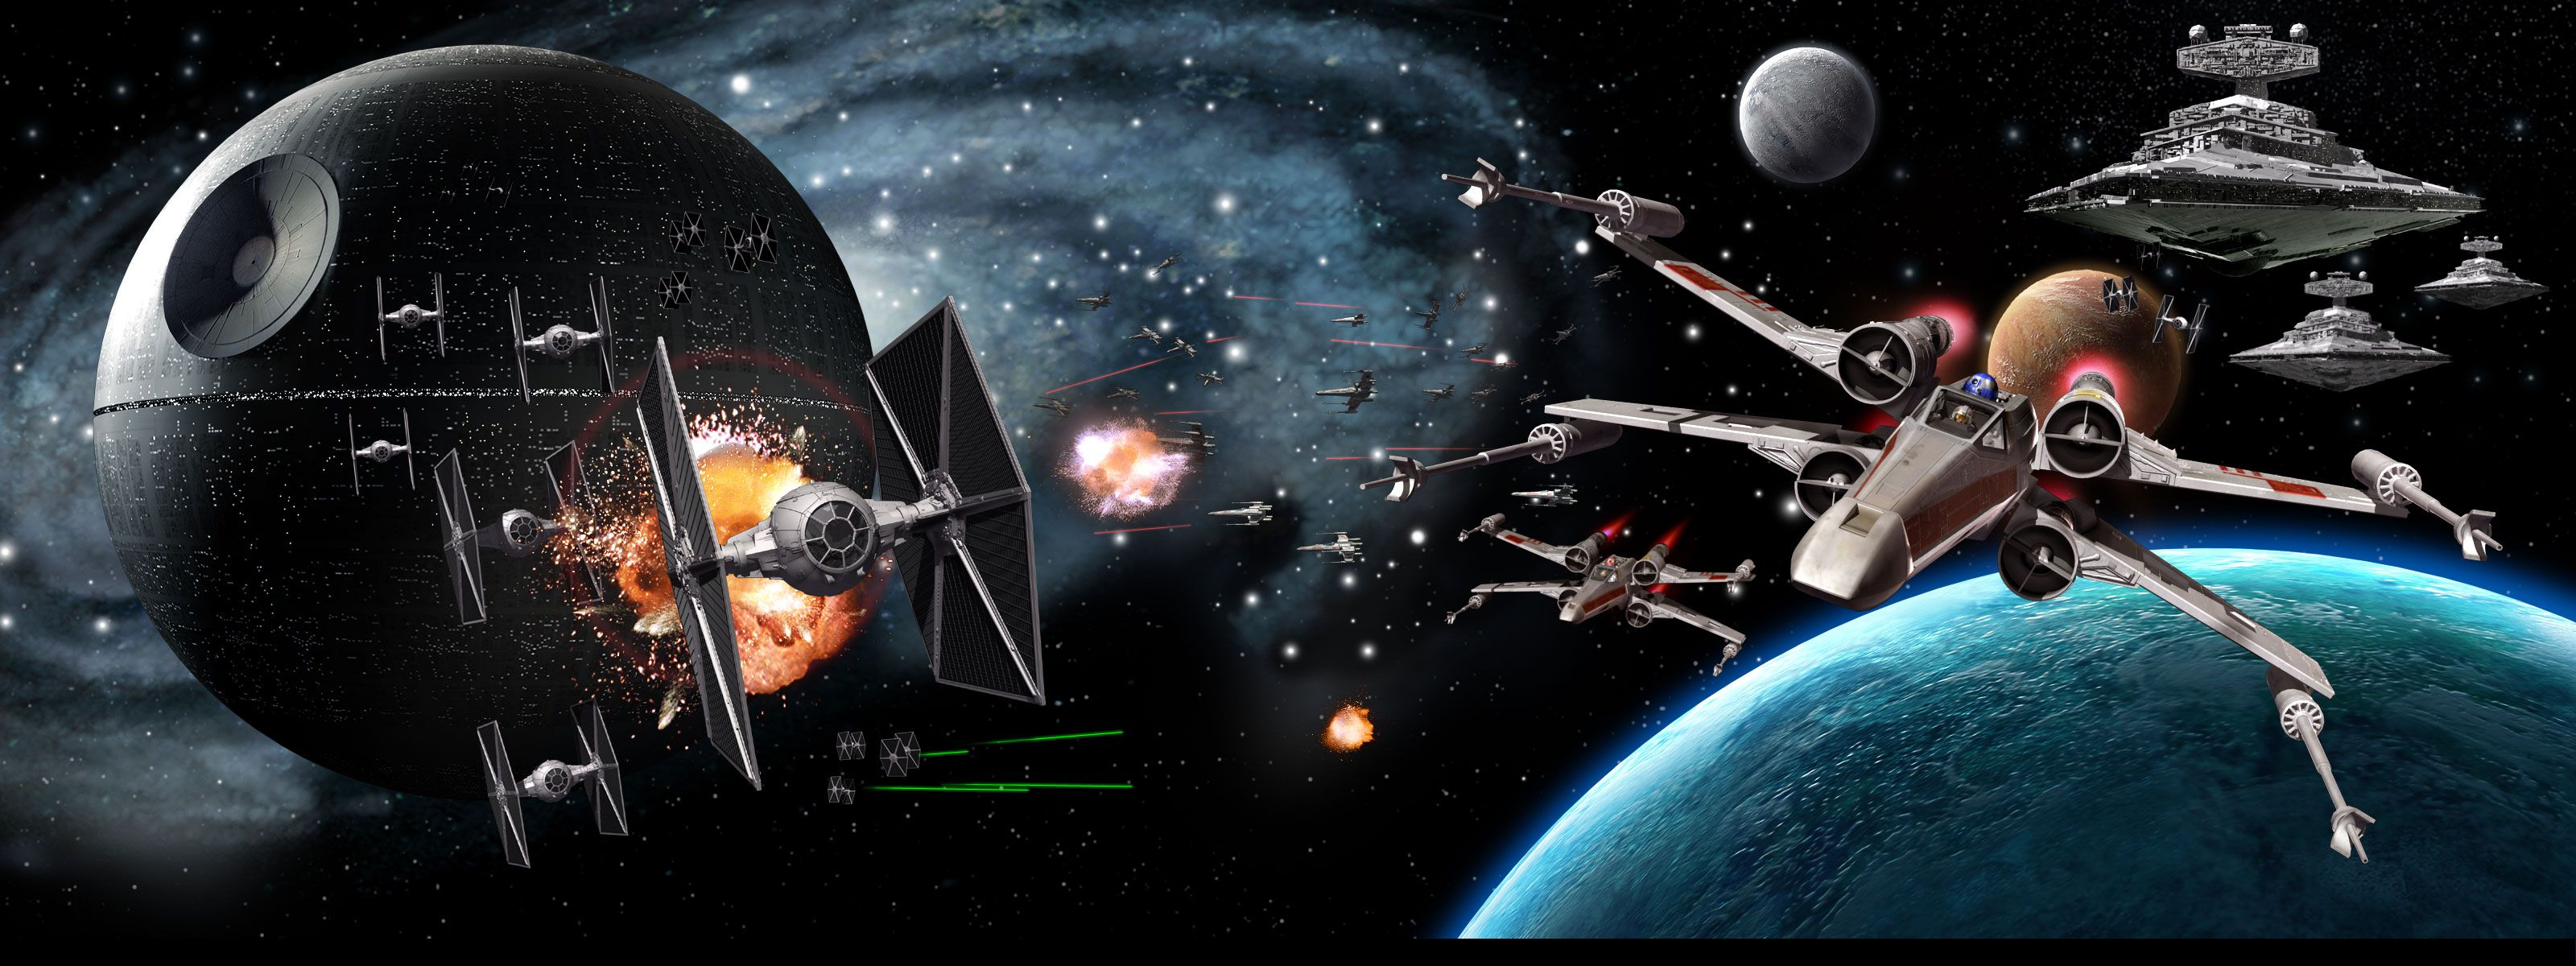 50 Star Wars Space Battle Wallpaper On Wallpapersafari